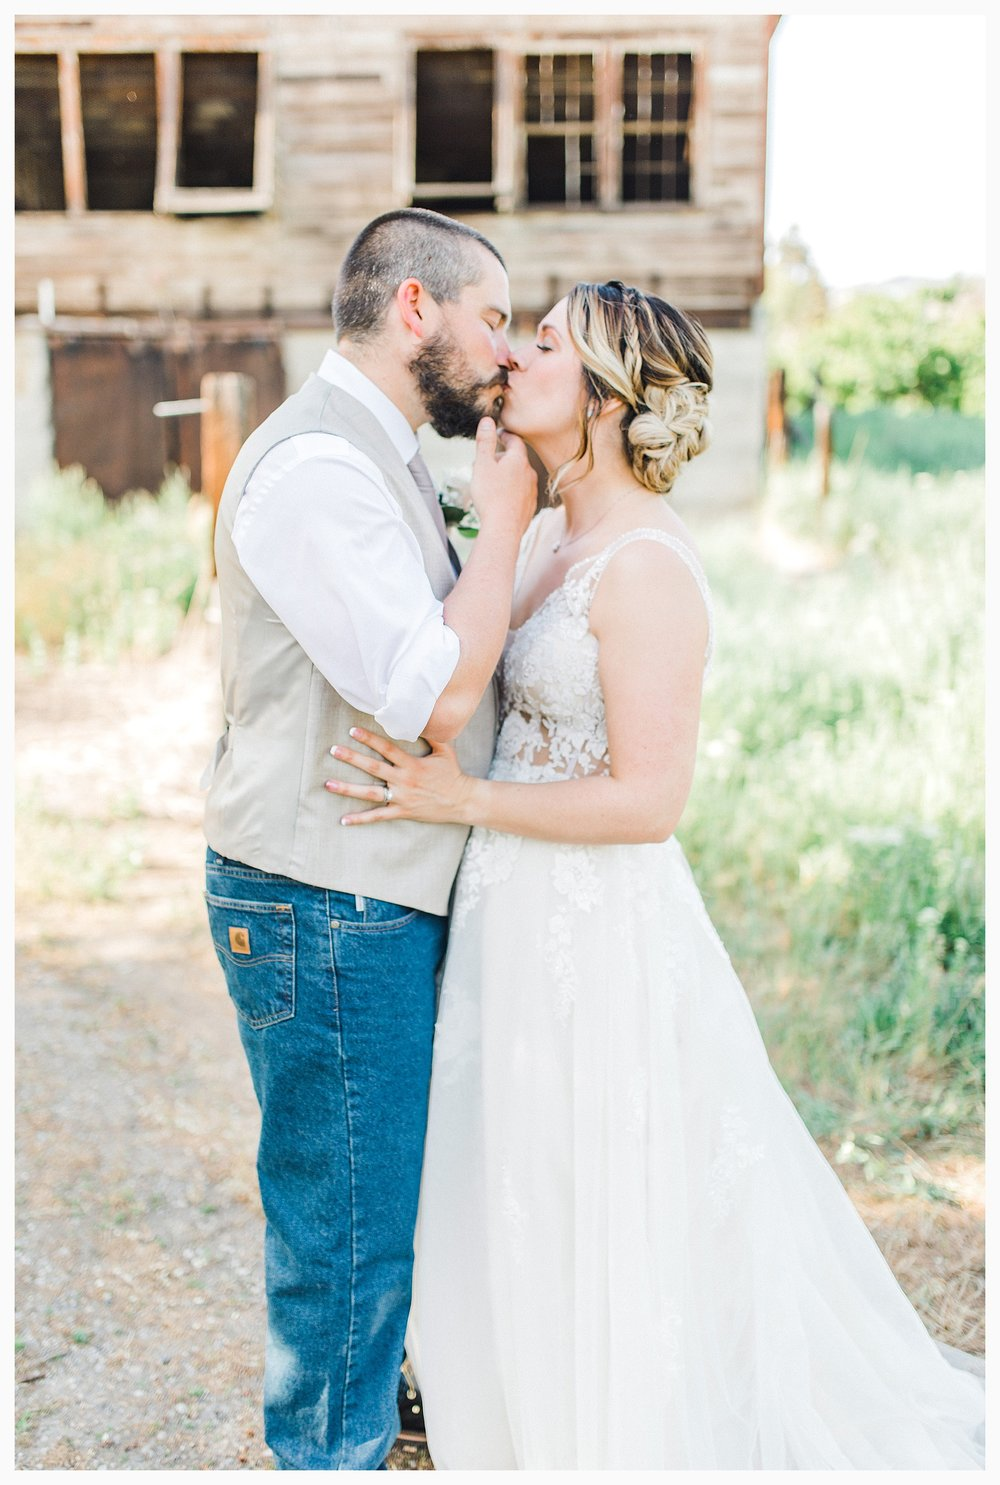 Rustic barn wedding in Wenatchee Washington at Sunshine Ranch on Easy Street, Emma Rose Company Seattle PNW Light and Airy Wedding Photographer_0087.jpg